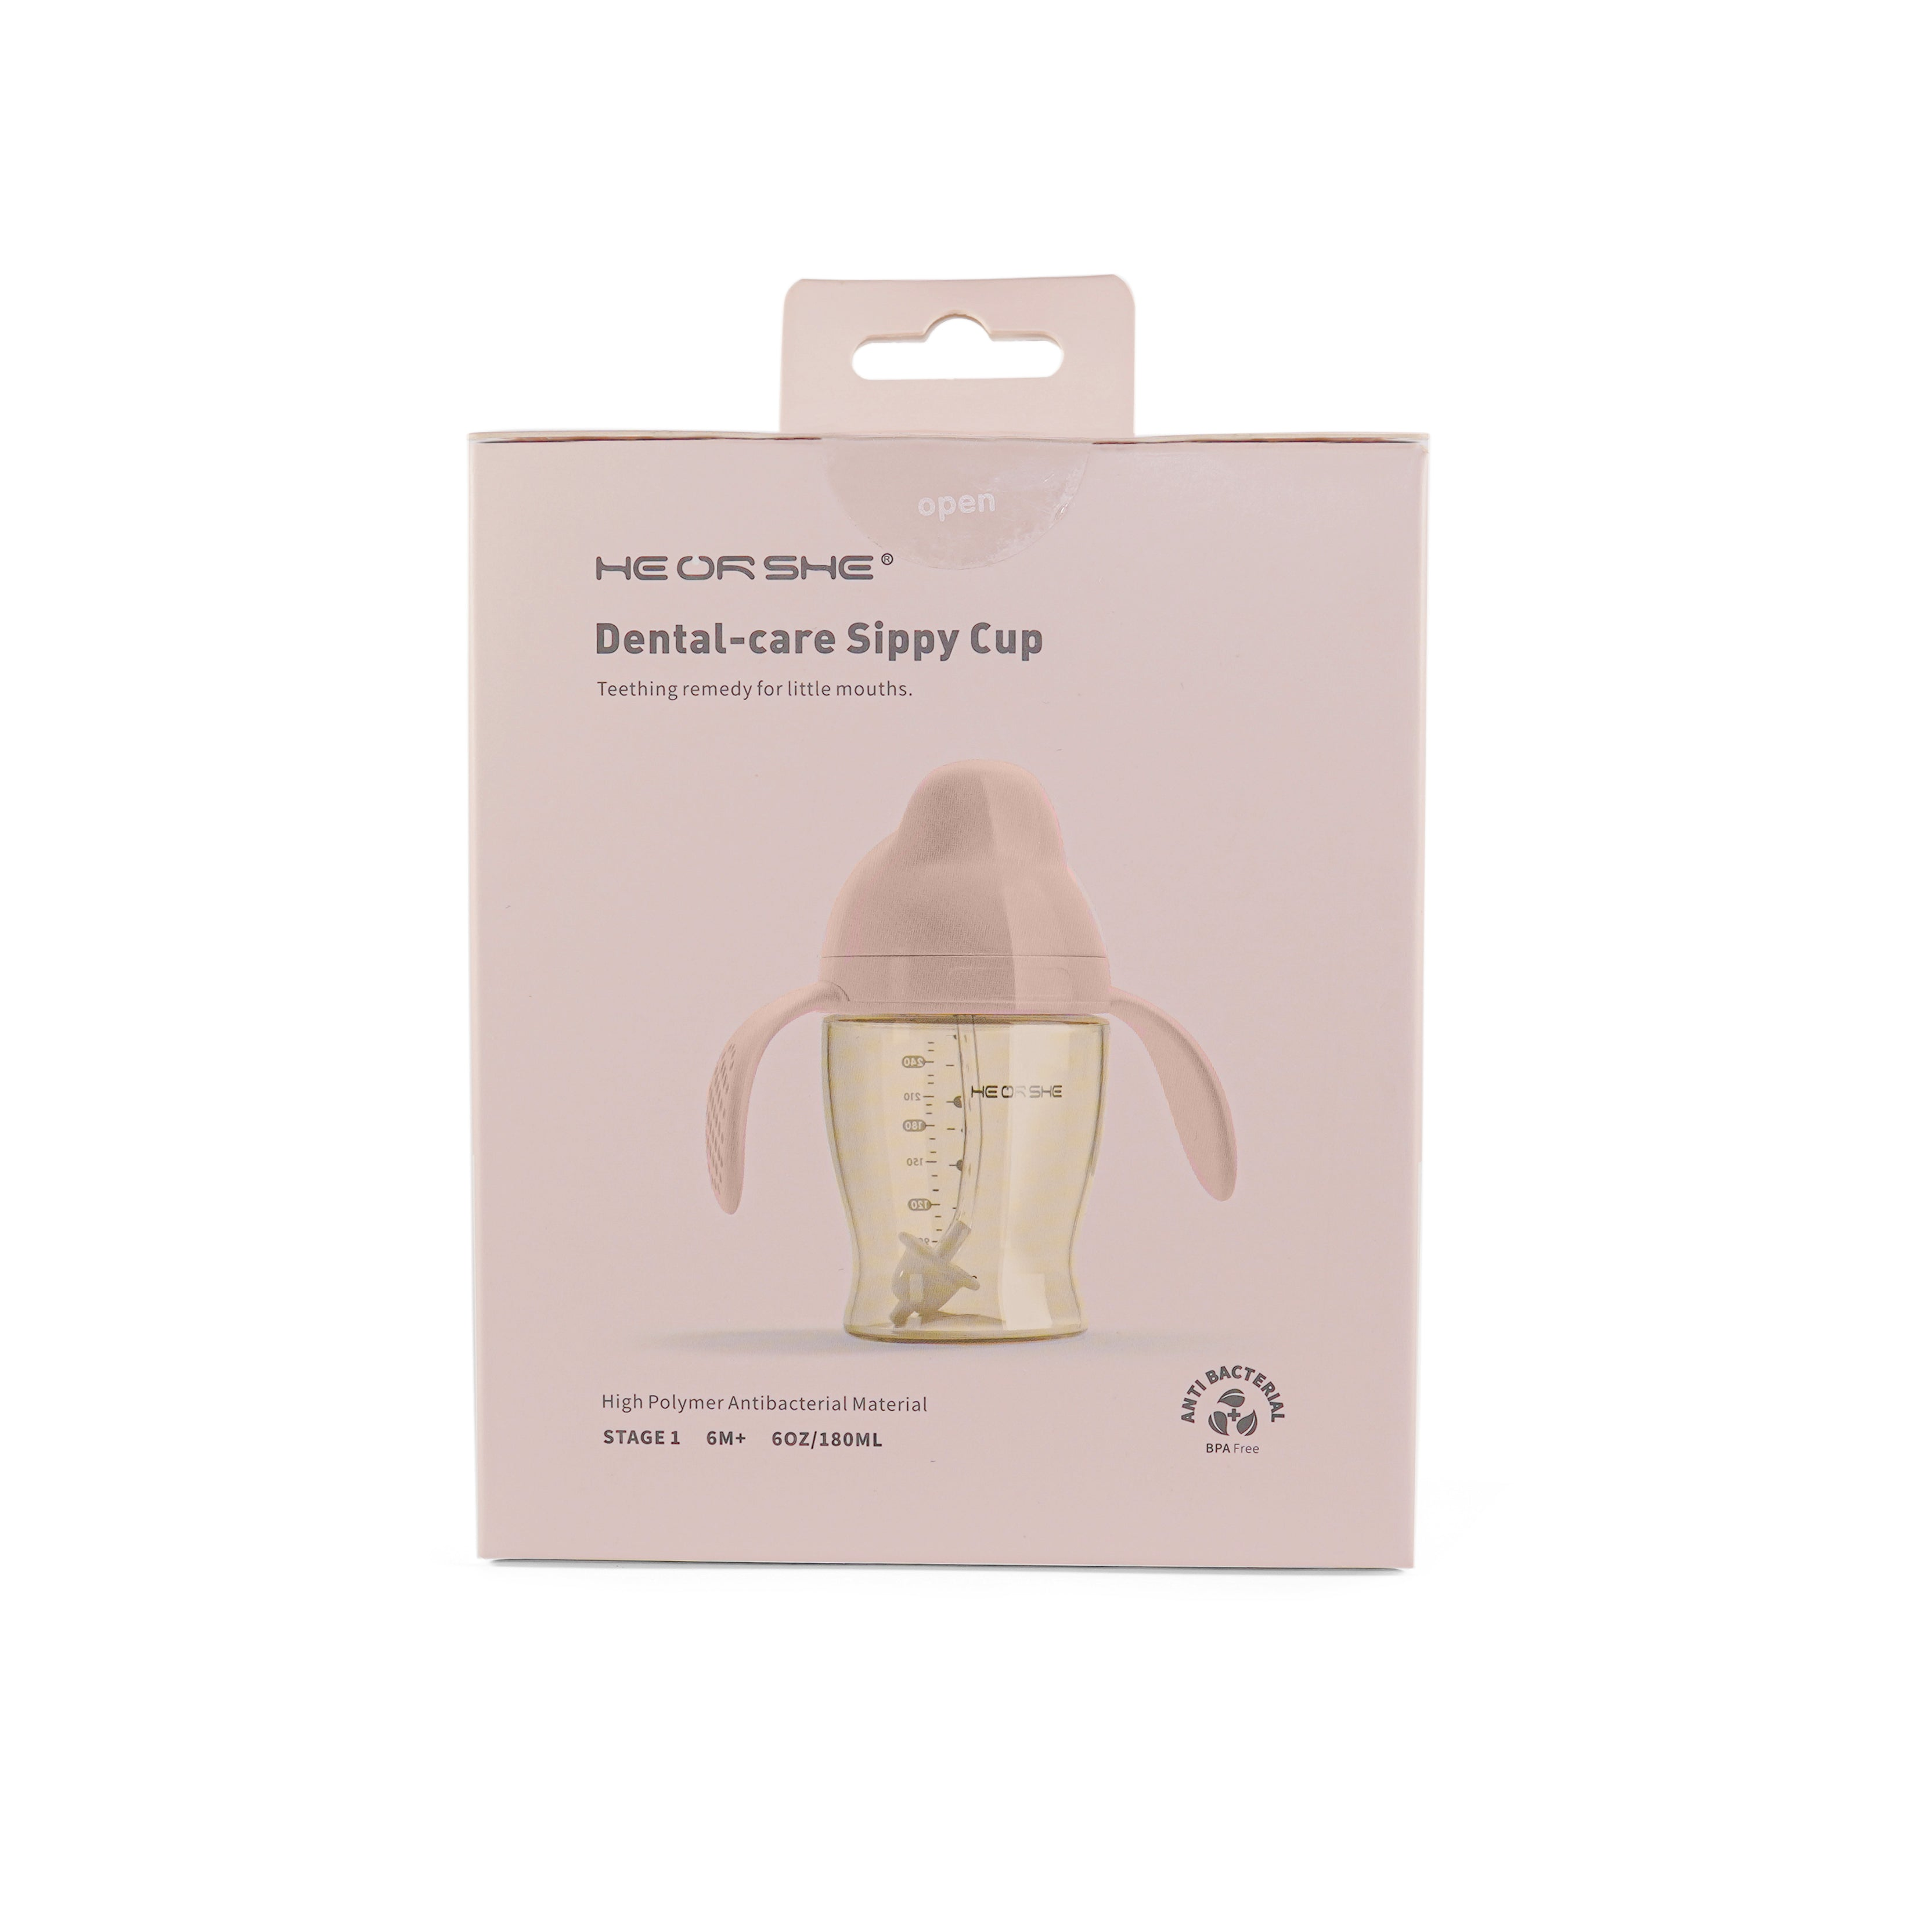 HE OR SHE Dental Care Sippy Cup Stage 1 (6m+) 6oz / 180ml